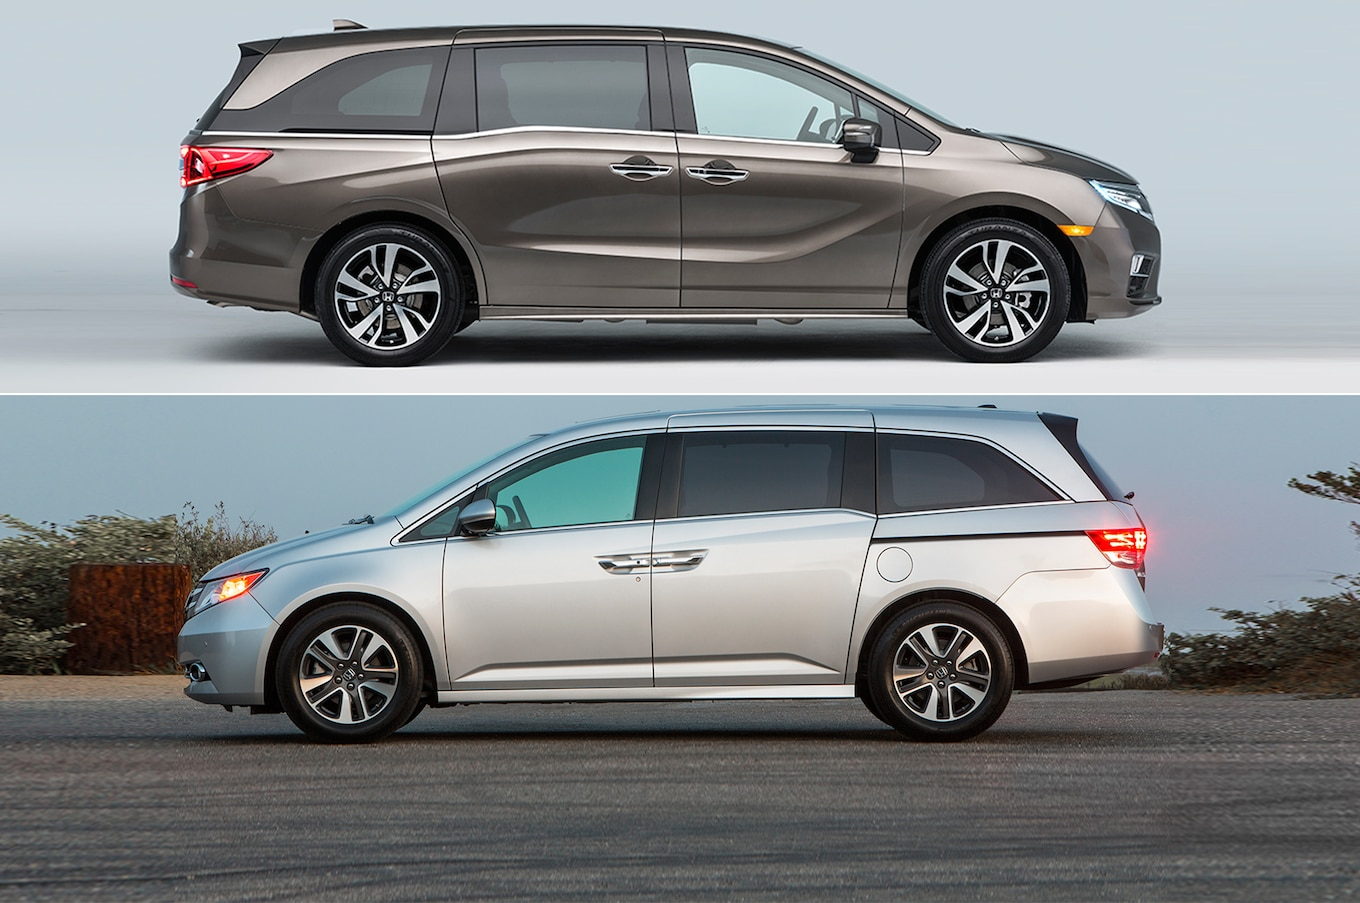 2017 Honda Odyssey Vs. 2018 Odyssey: Buy Now Or Wait For The New One?  - Motor Trend